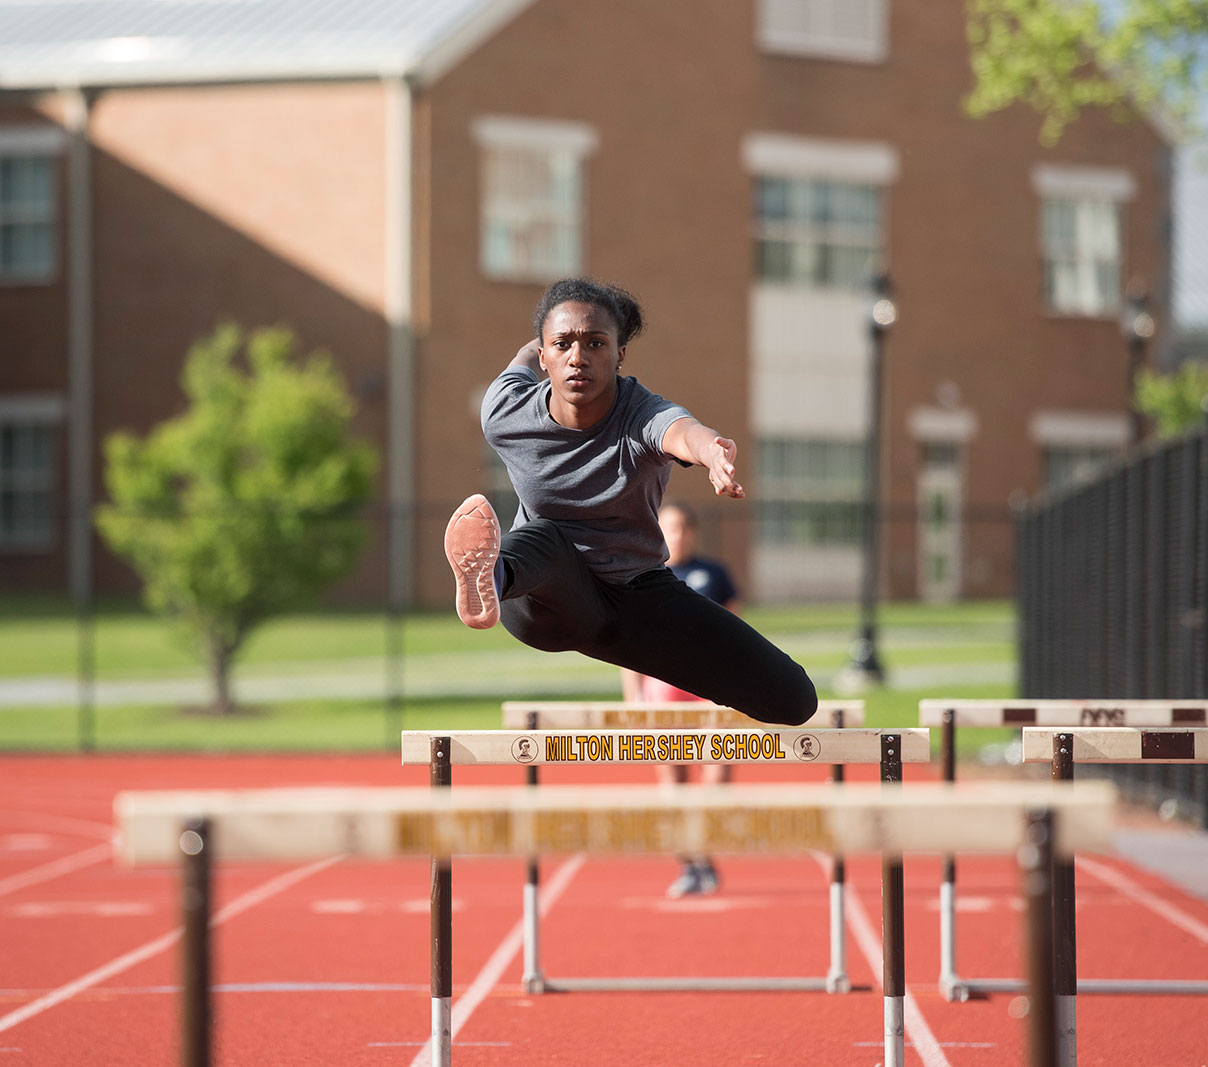 MHS athlete jumping hurdles